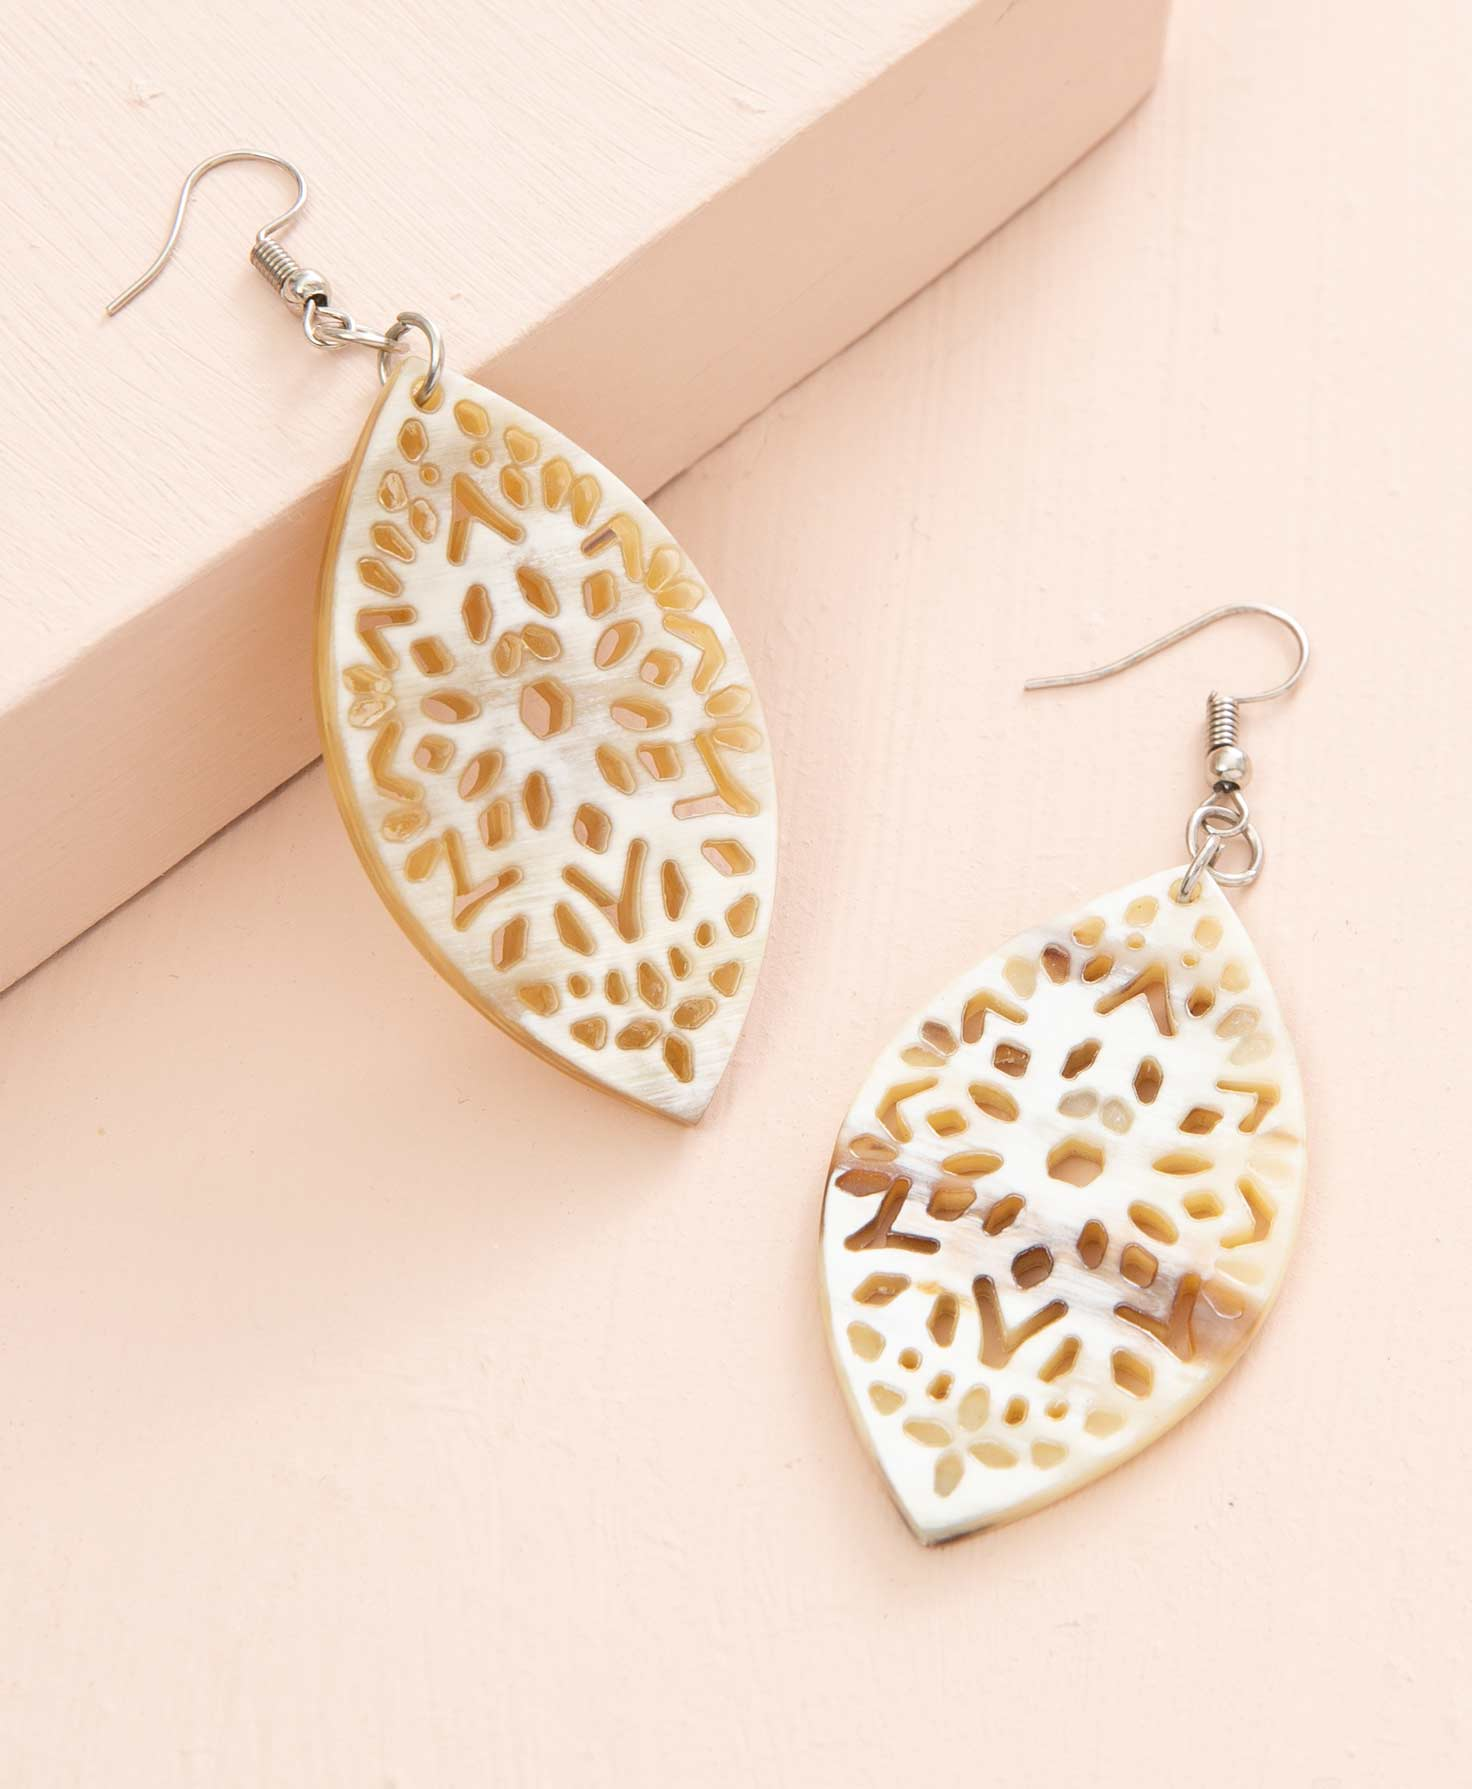 The Lovely Lace Earrings lay on a peach colored background. They are almond-shaped and are made from pieces of natural horn featuring laser-cut designs. The intricate pattern of the cut-outs gives the pair a lace-like feel. The horn is cream-colored but features natural variations and markings that are unique to each pair. The ear hooks are silver.